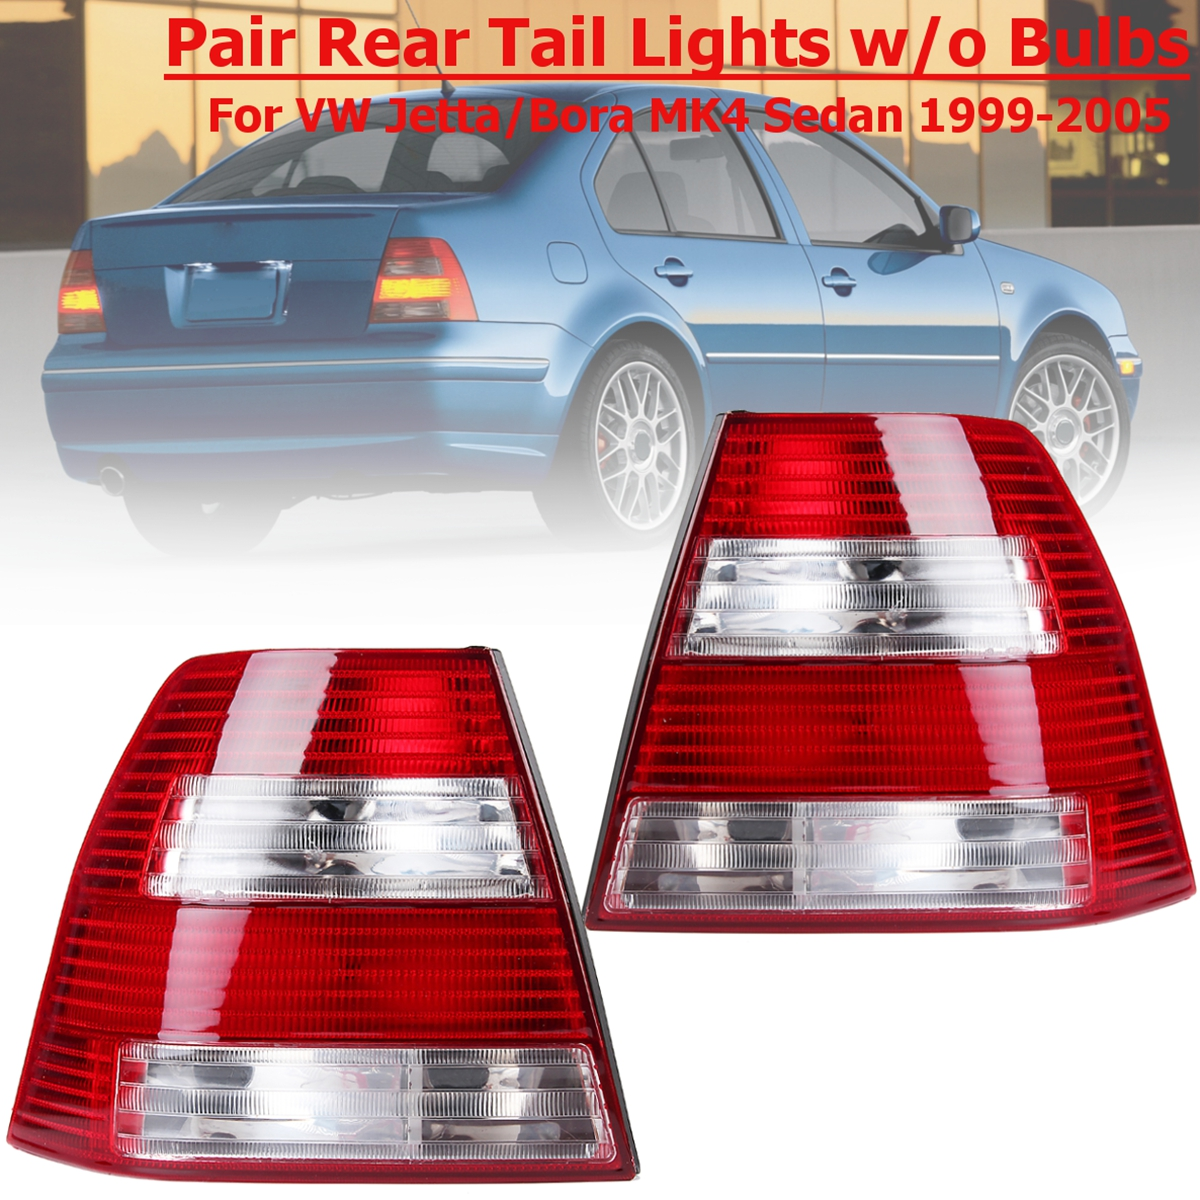 цена на 1 Pair Brake Lamp Rear Red Tail Lights For Volkswagen Jetta for VW Jetta Bora MK4 IV Sedan 1999 2000 2001 2002 2003 2004 2005